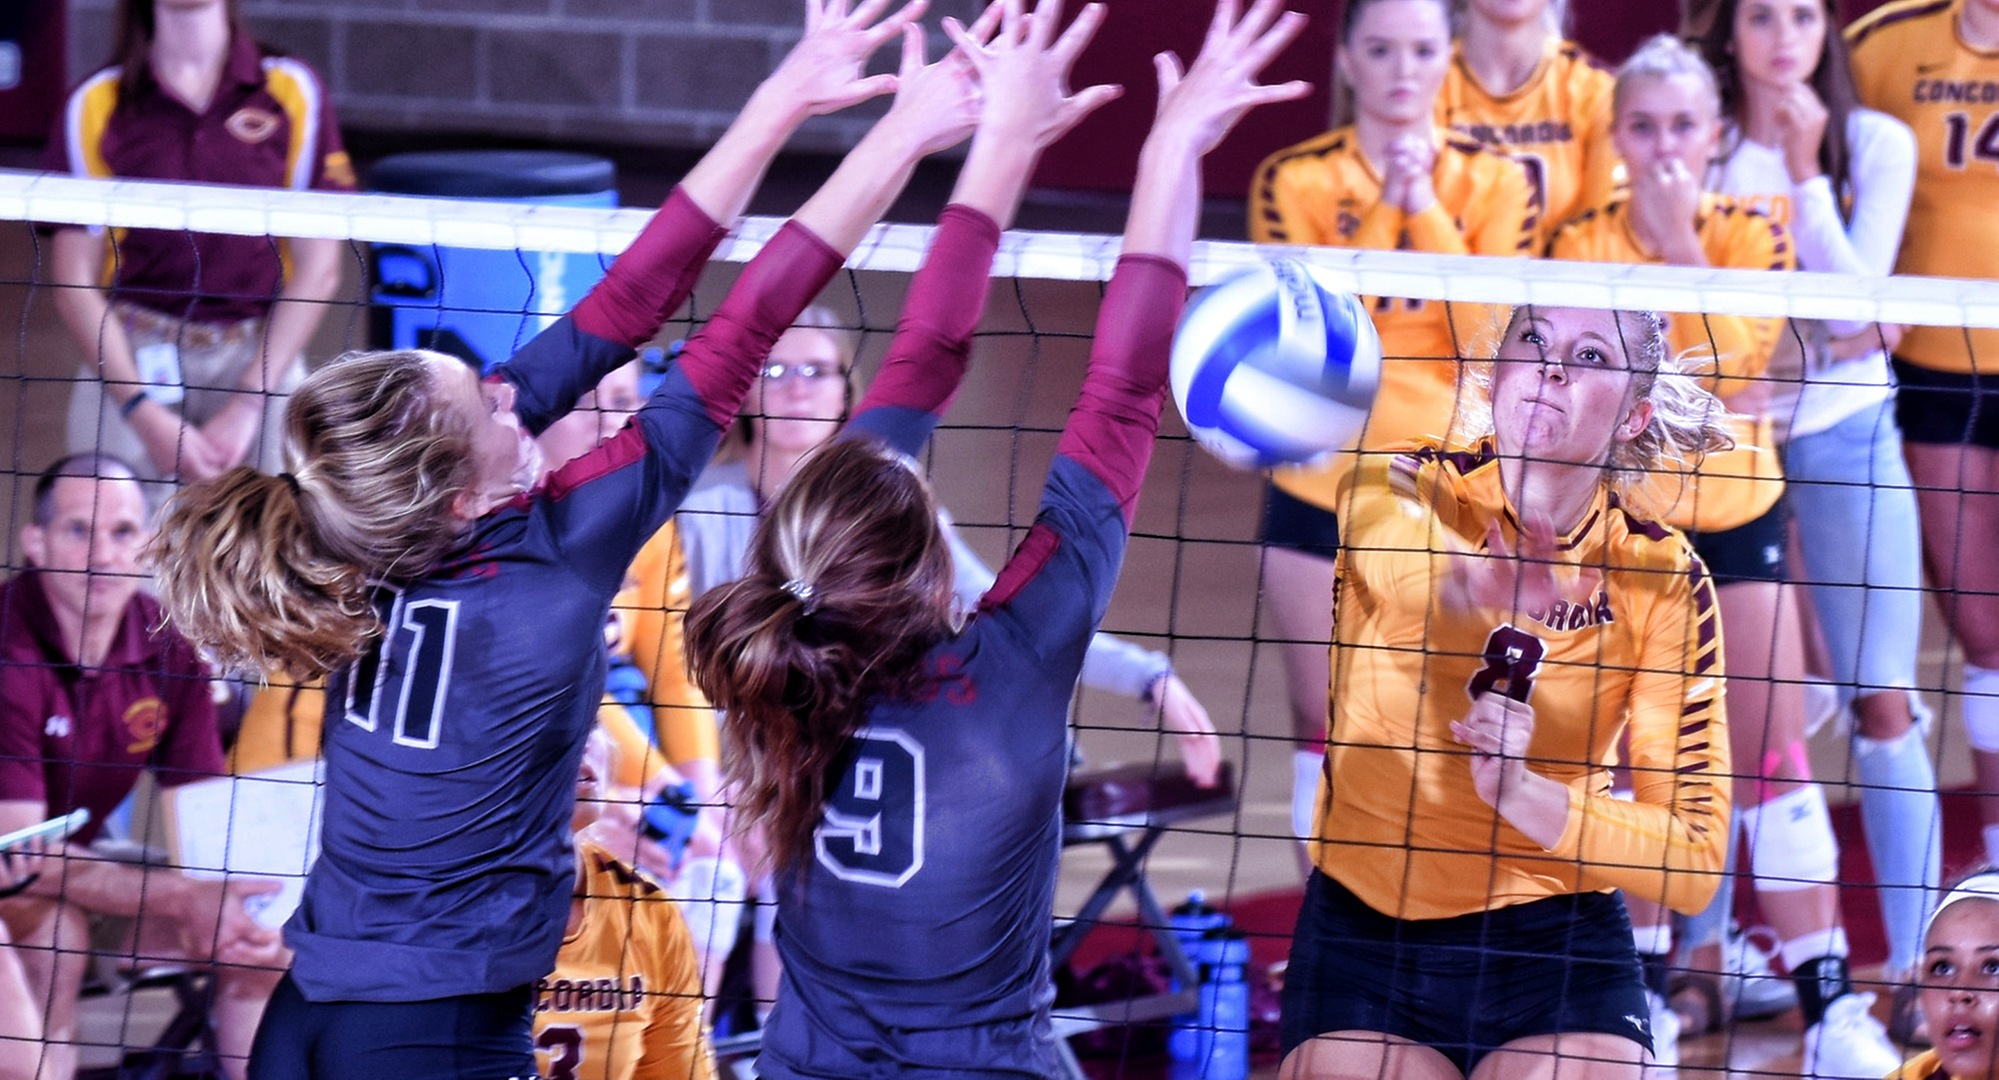 Brianna Carney had a team-high nine blocks at the Wis.-Eau Claire tournament.